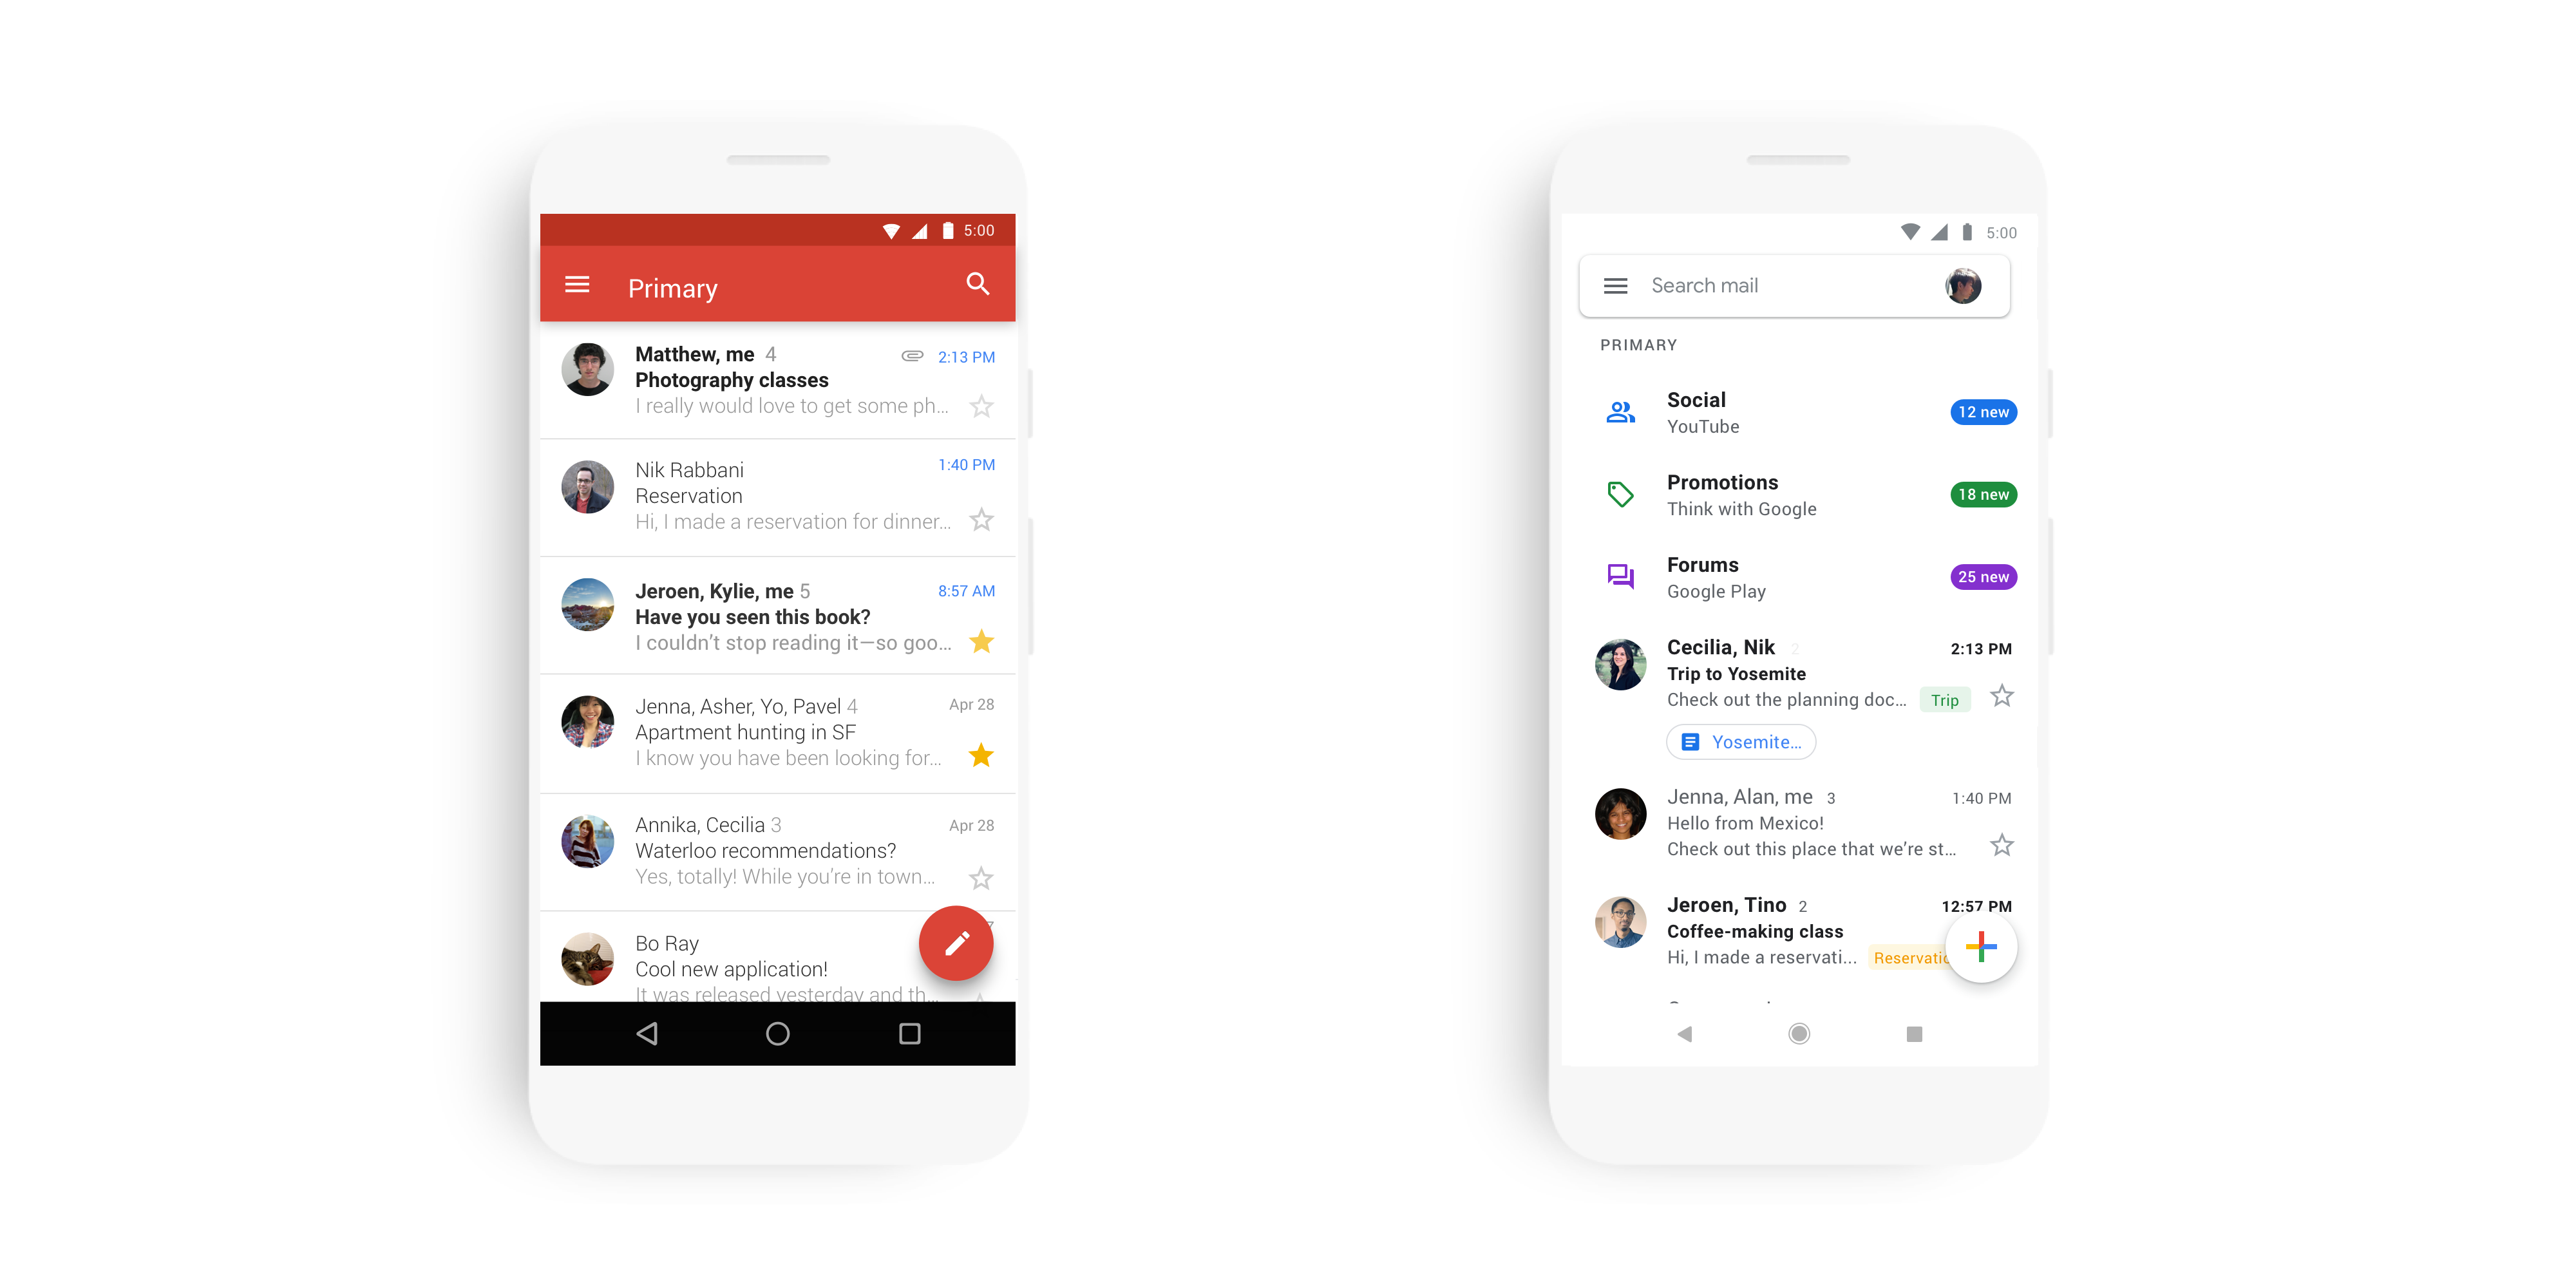 Gmail for iOS rolling out Material Theme redesign [Gallery